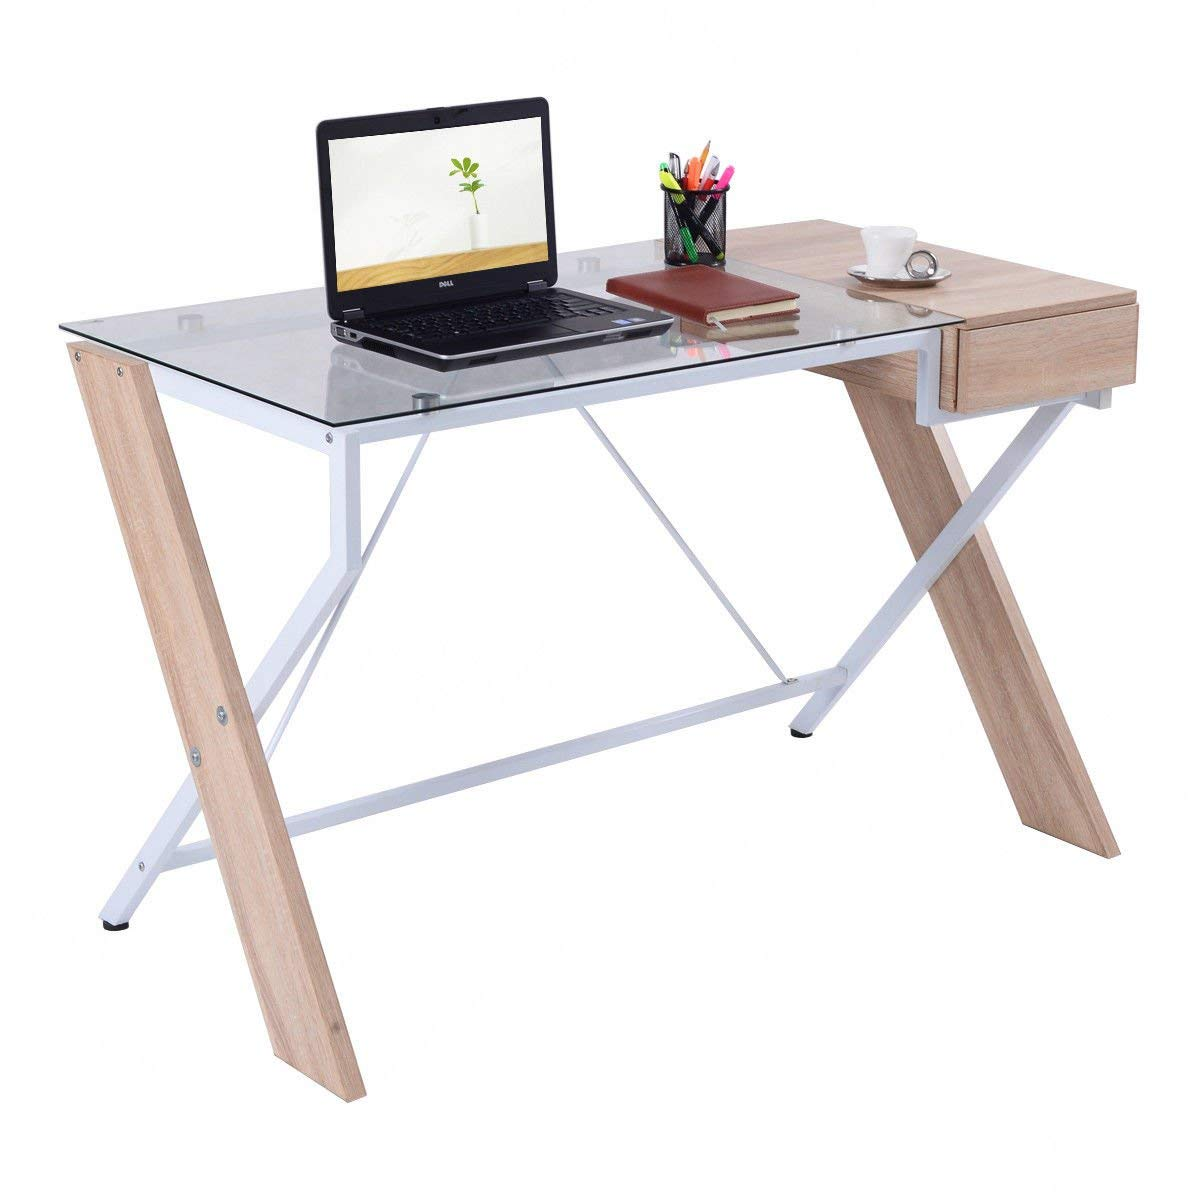 ShopForAllYou Desk Table Office Computer Desk Laptop Table Glass Top Wood Metal Frame Home Office Furniture New